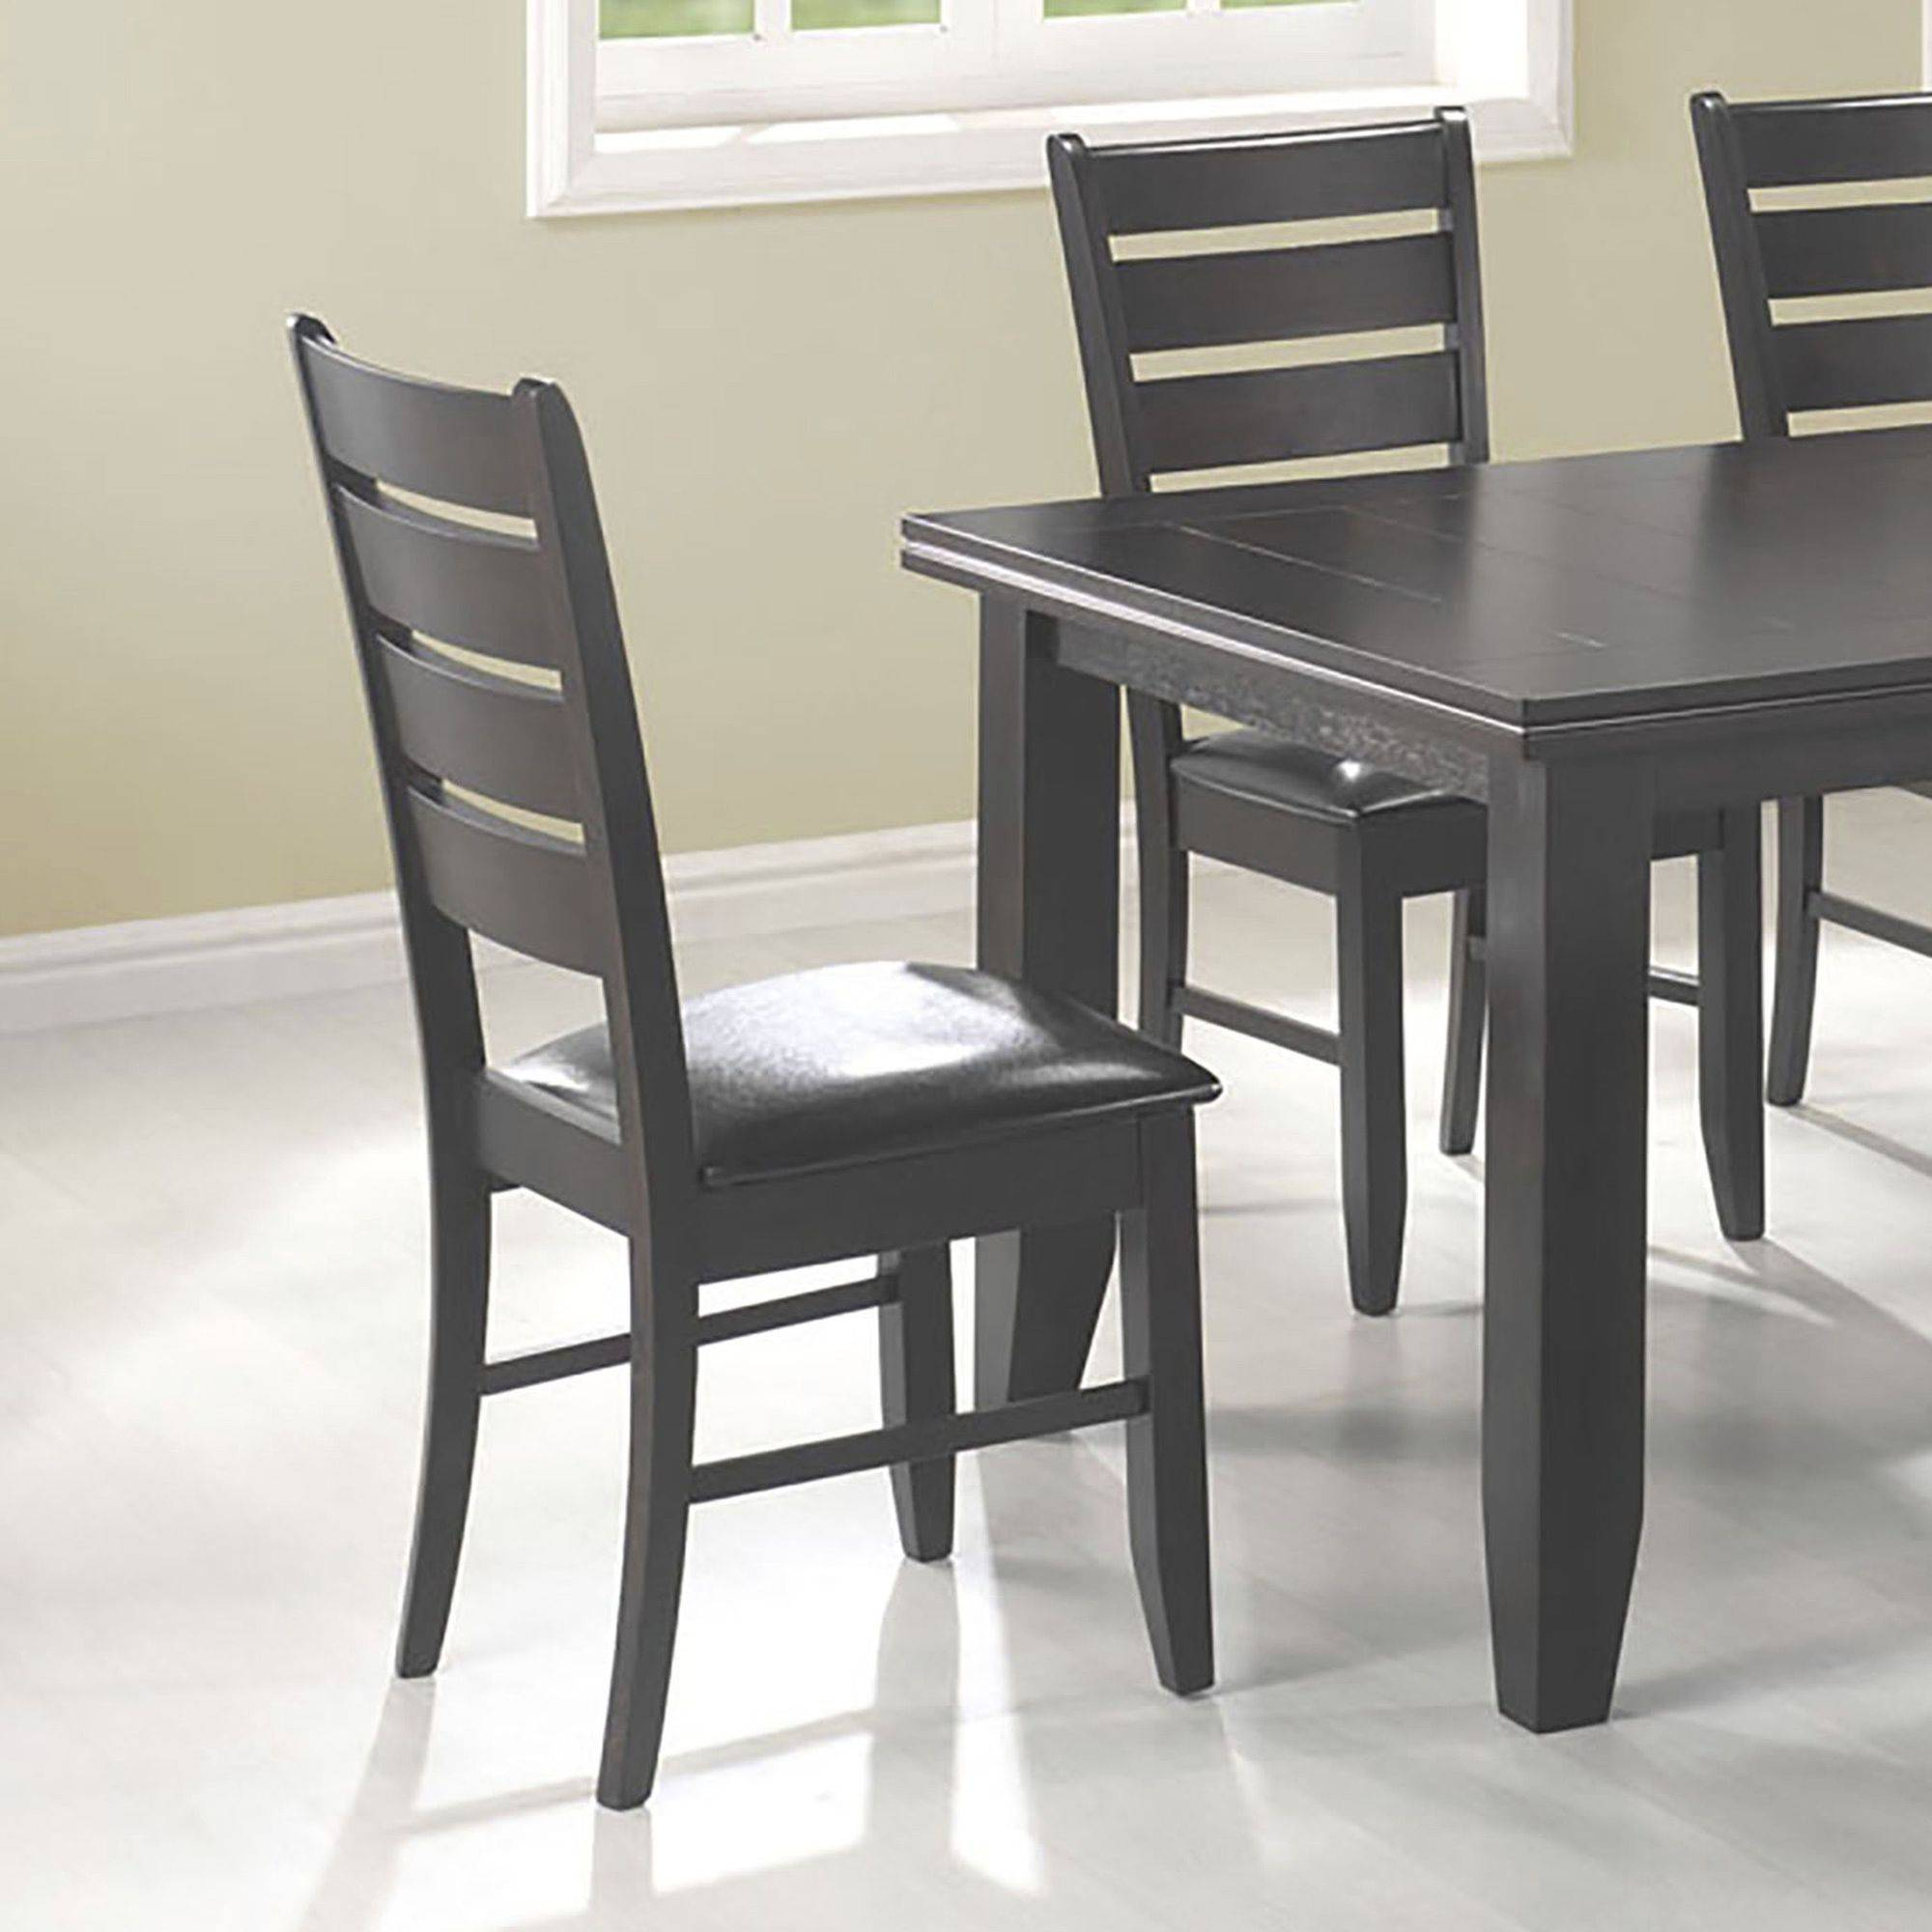 Imagio Home Roanoke X Back Dining Side Chairs Set of 2 Rubbed